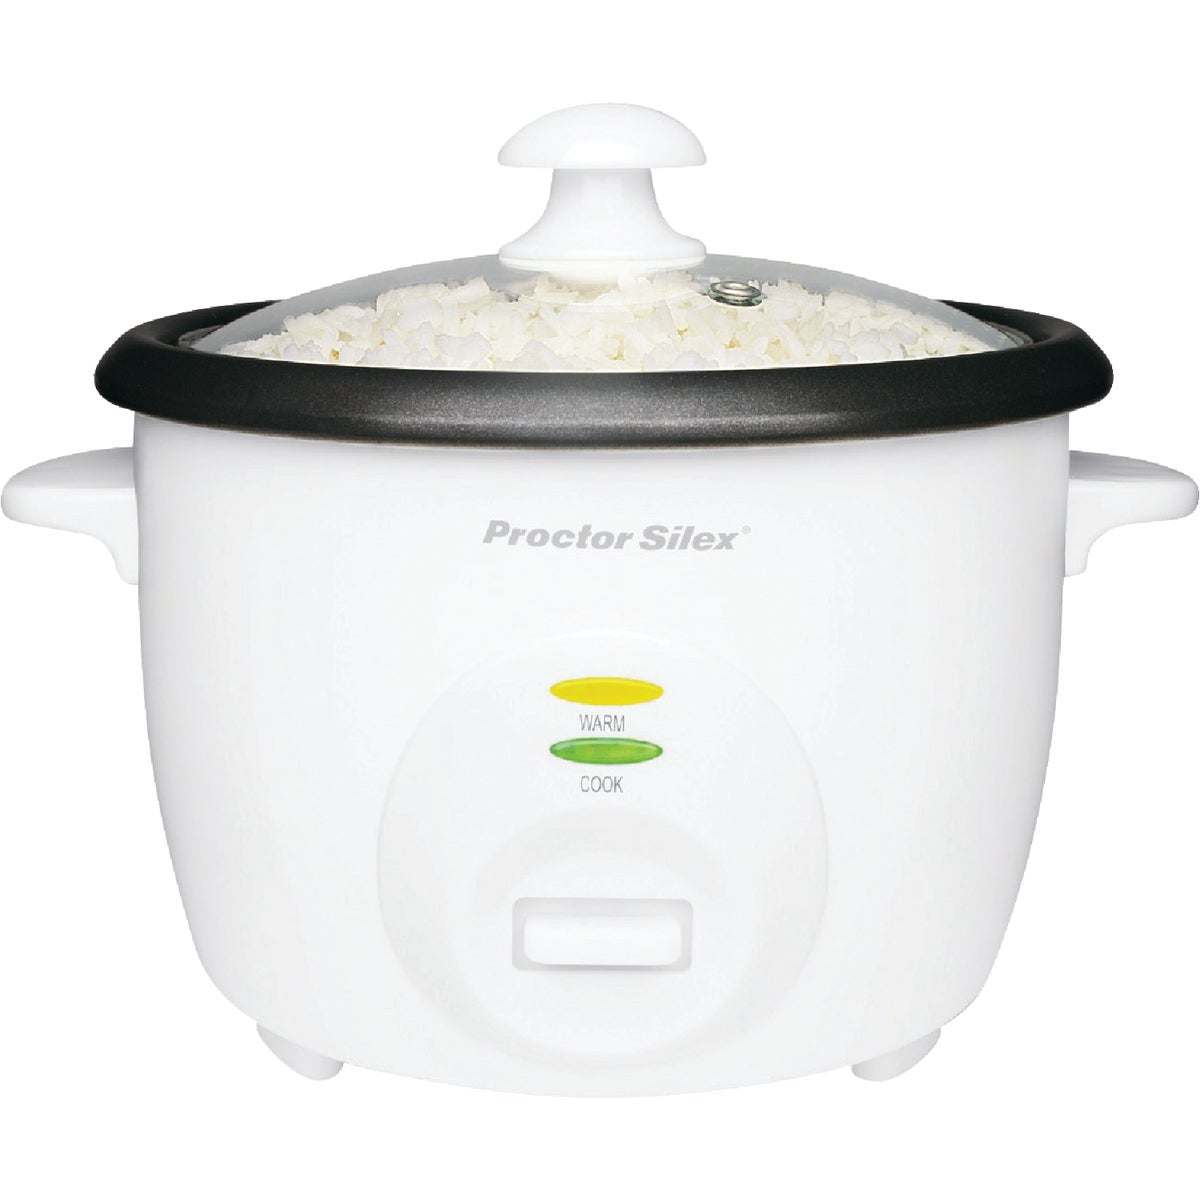 10 CUP RICE COOKER - 37533 by Hamilton Beach Brand